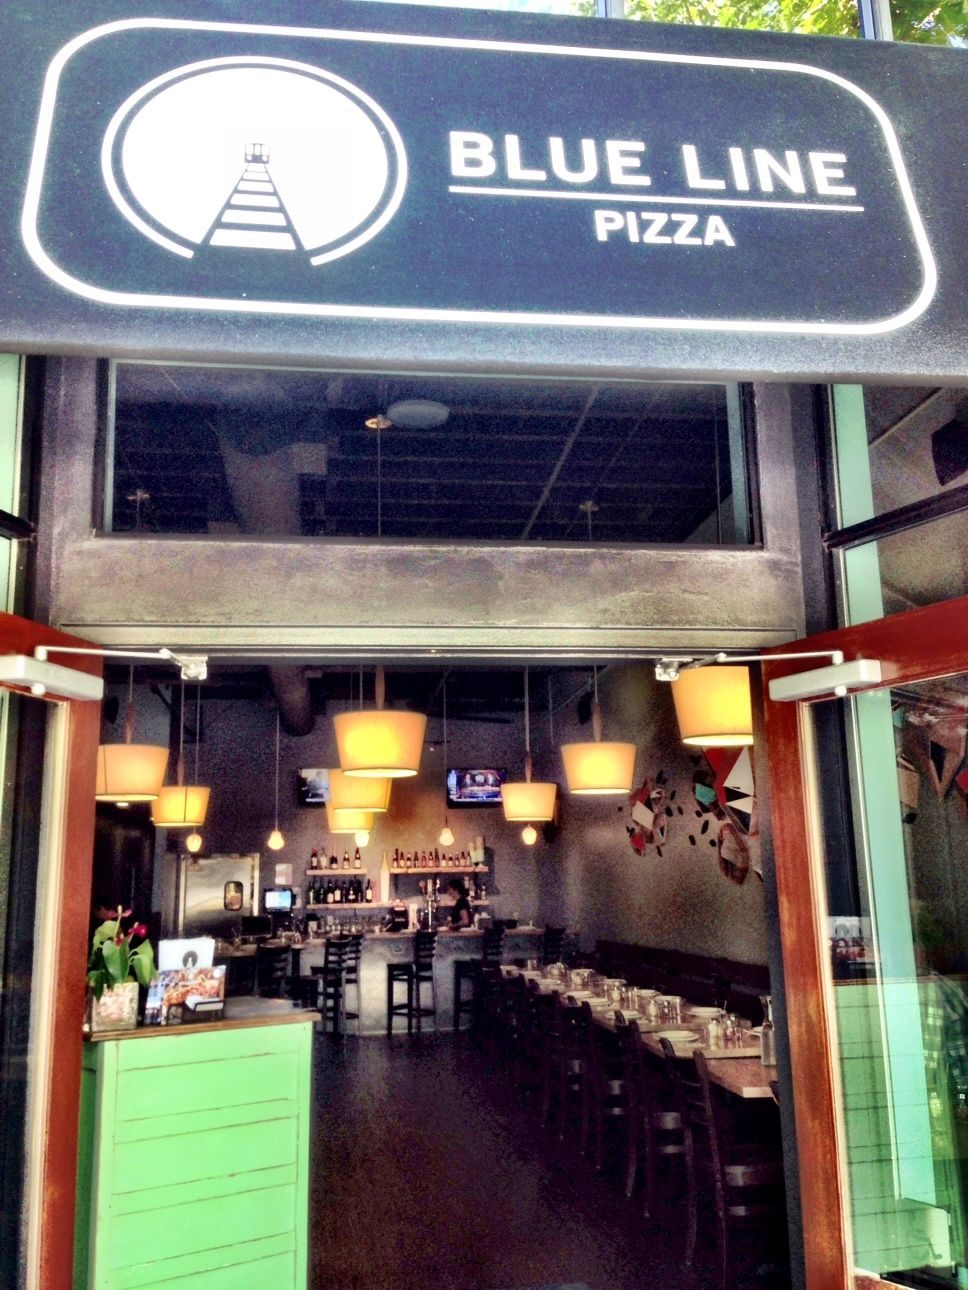 Restaurants Our Mountain View Location Come On In Or Order Online At Www Bluelinepizza